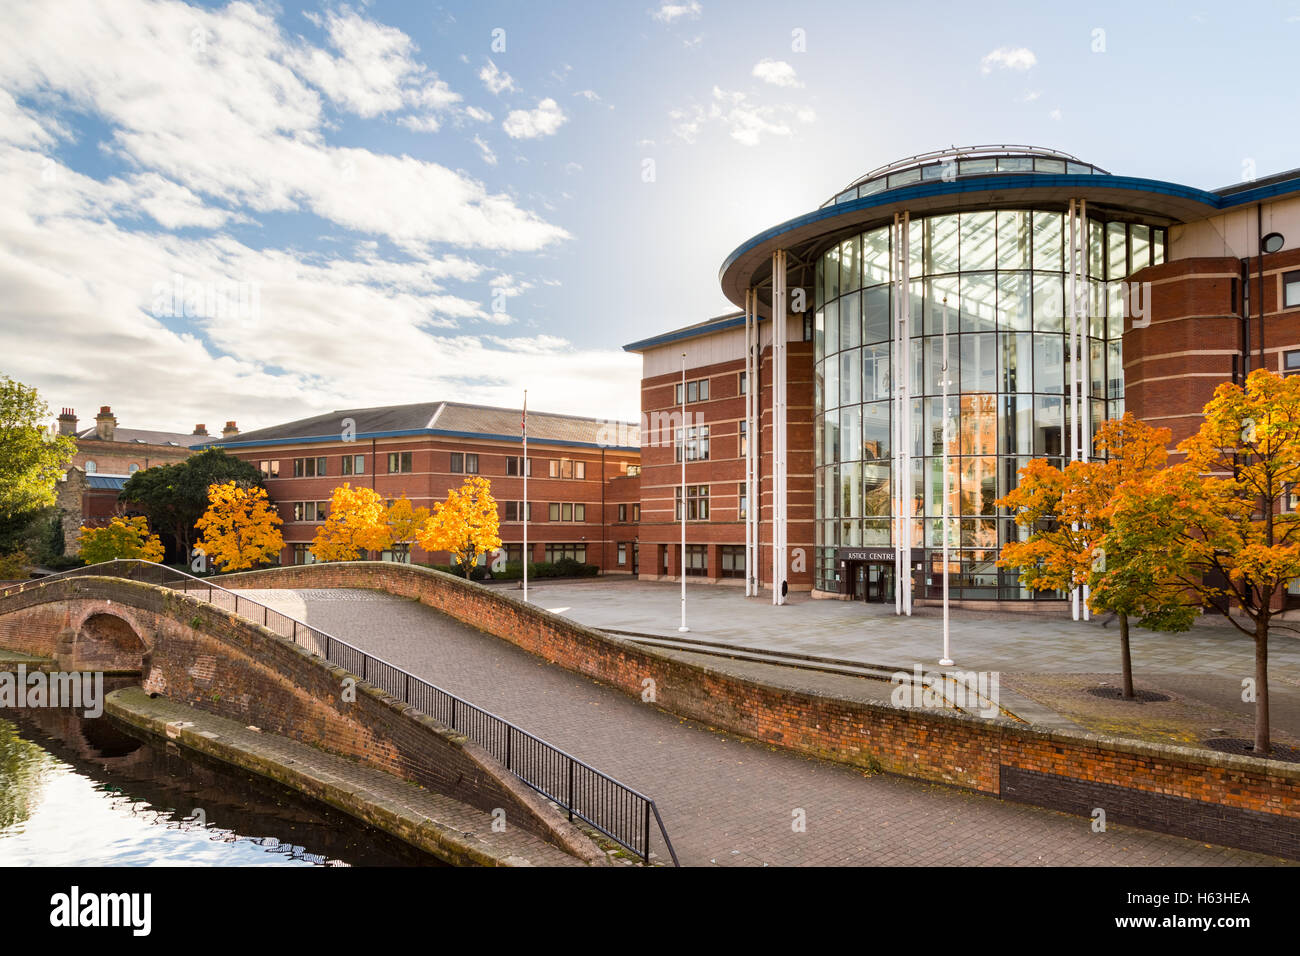 Nottingham Magistrates court. In Nottingham, England. - Stock Image